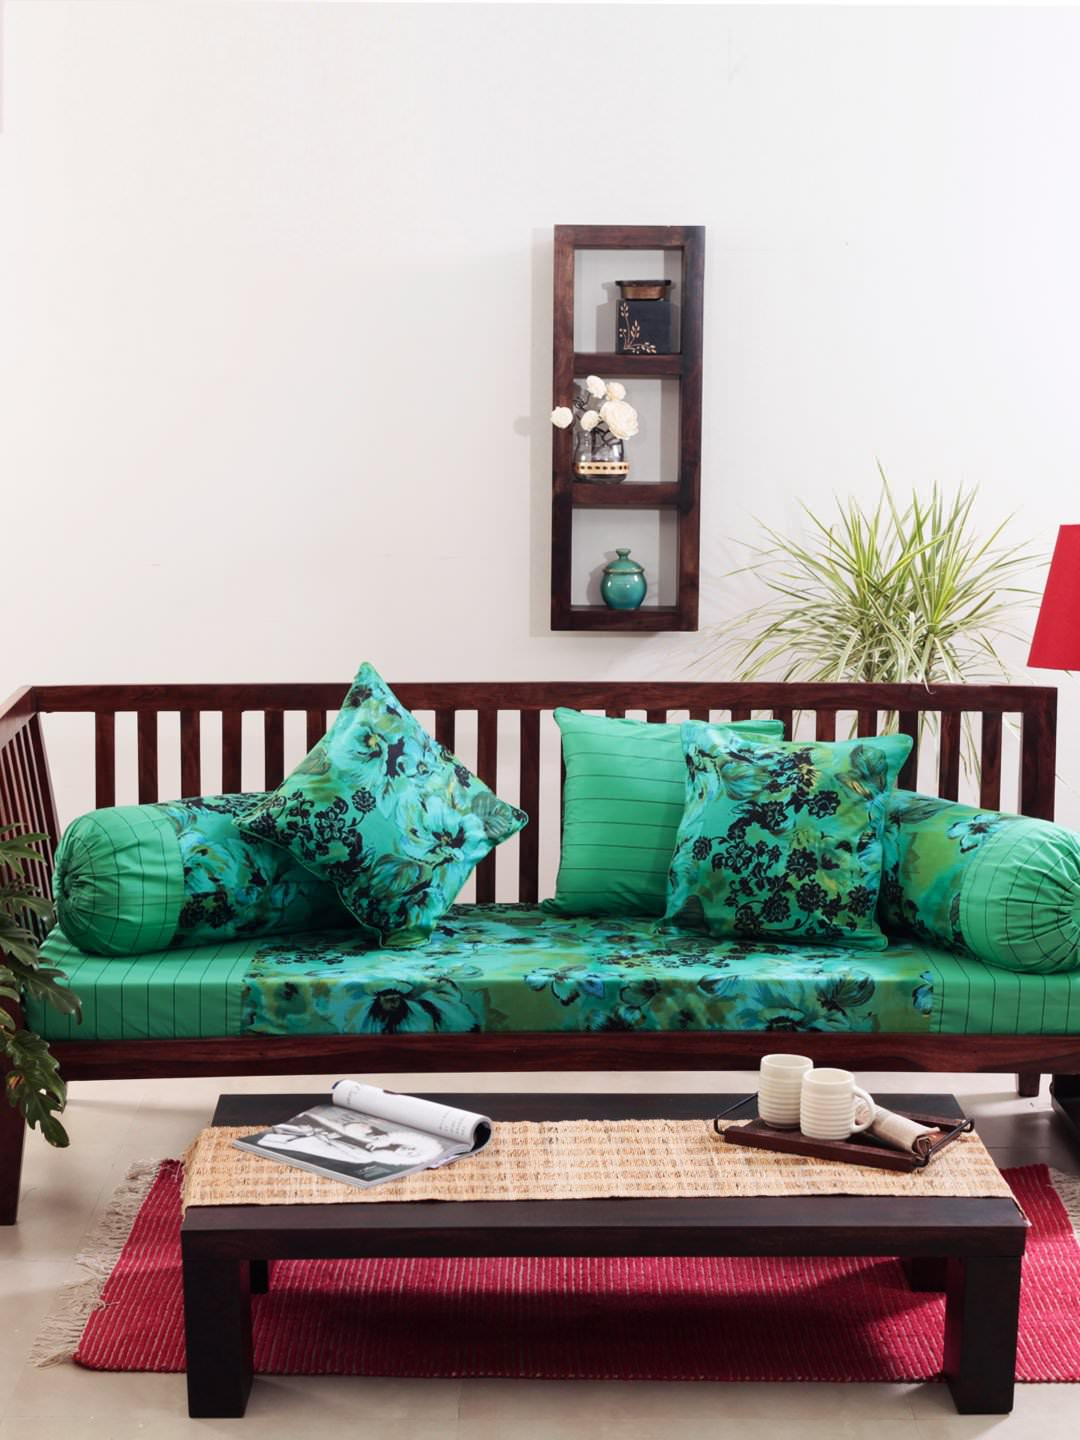 Diwan Sofa Divan Designs For Living Room Zjgf Sheila Barnett Blog 39s